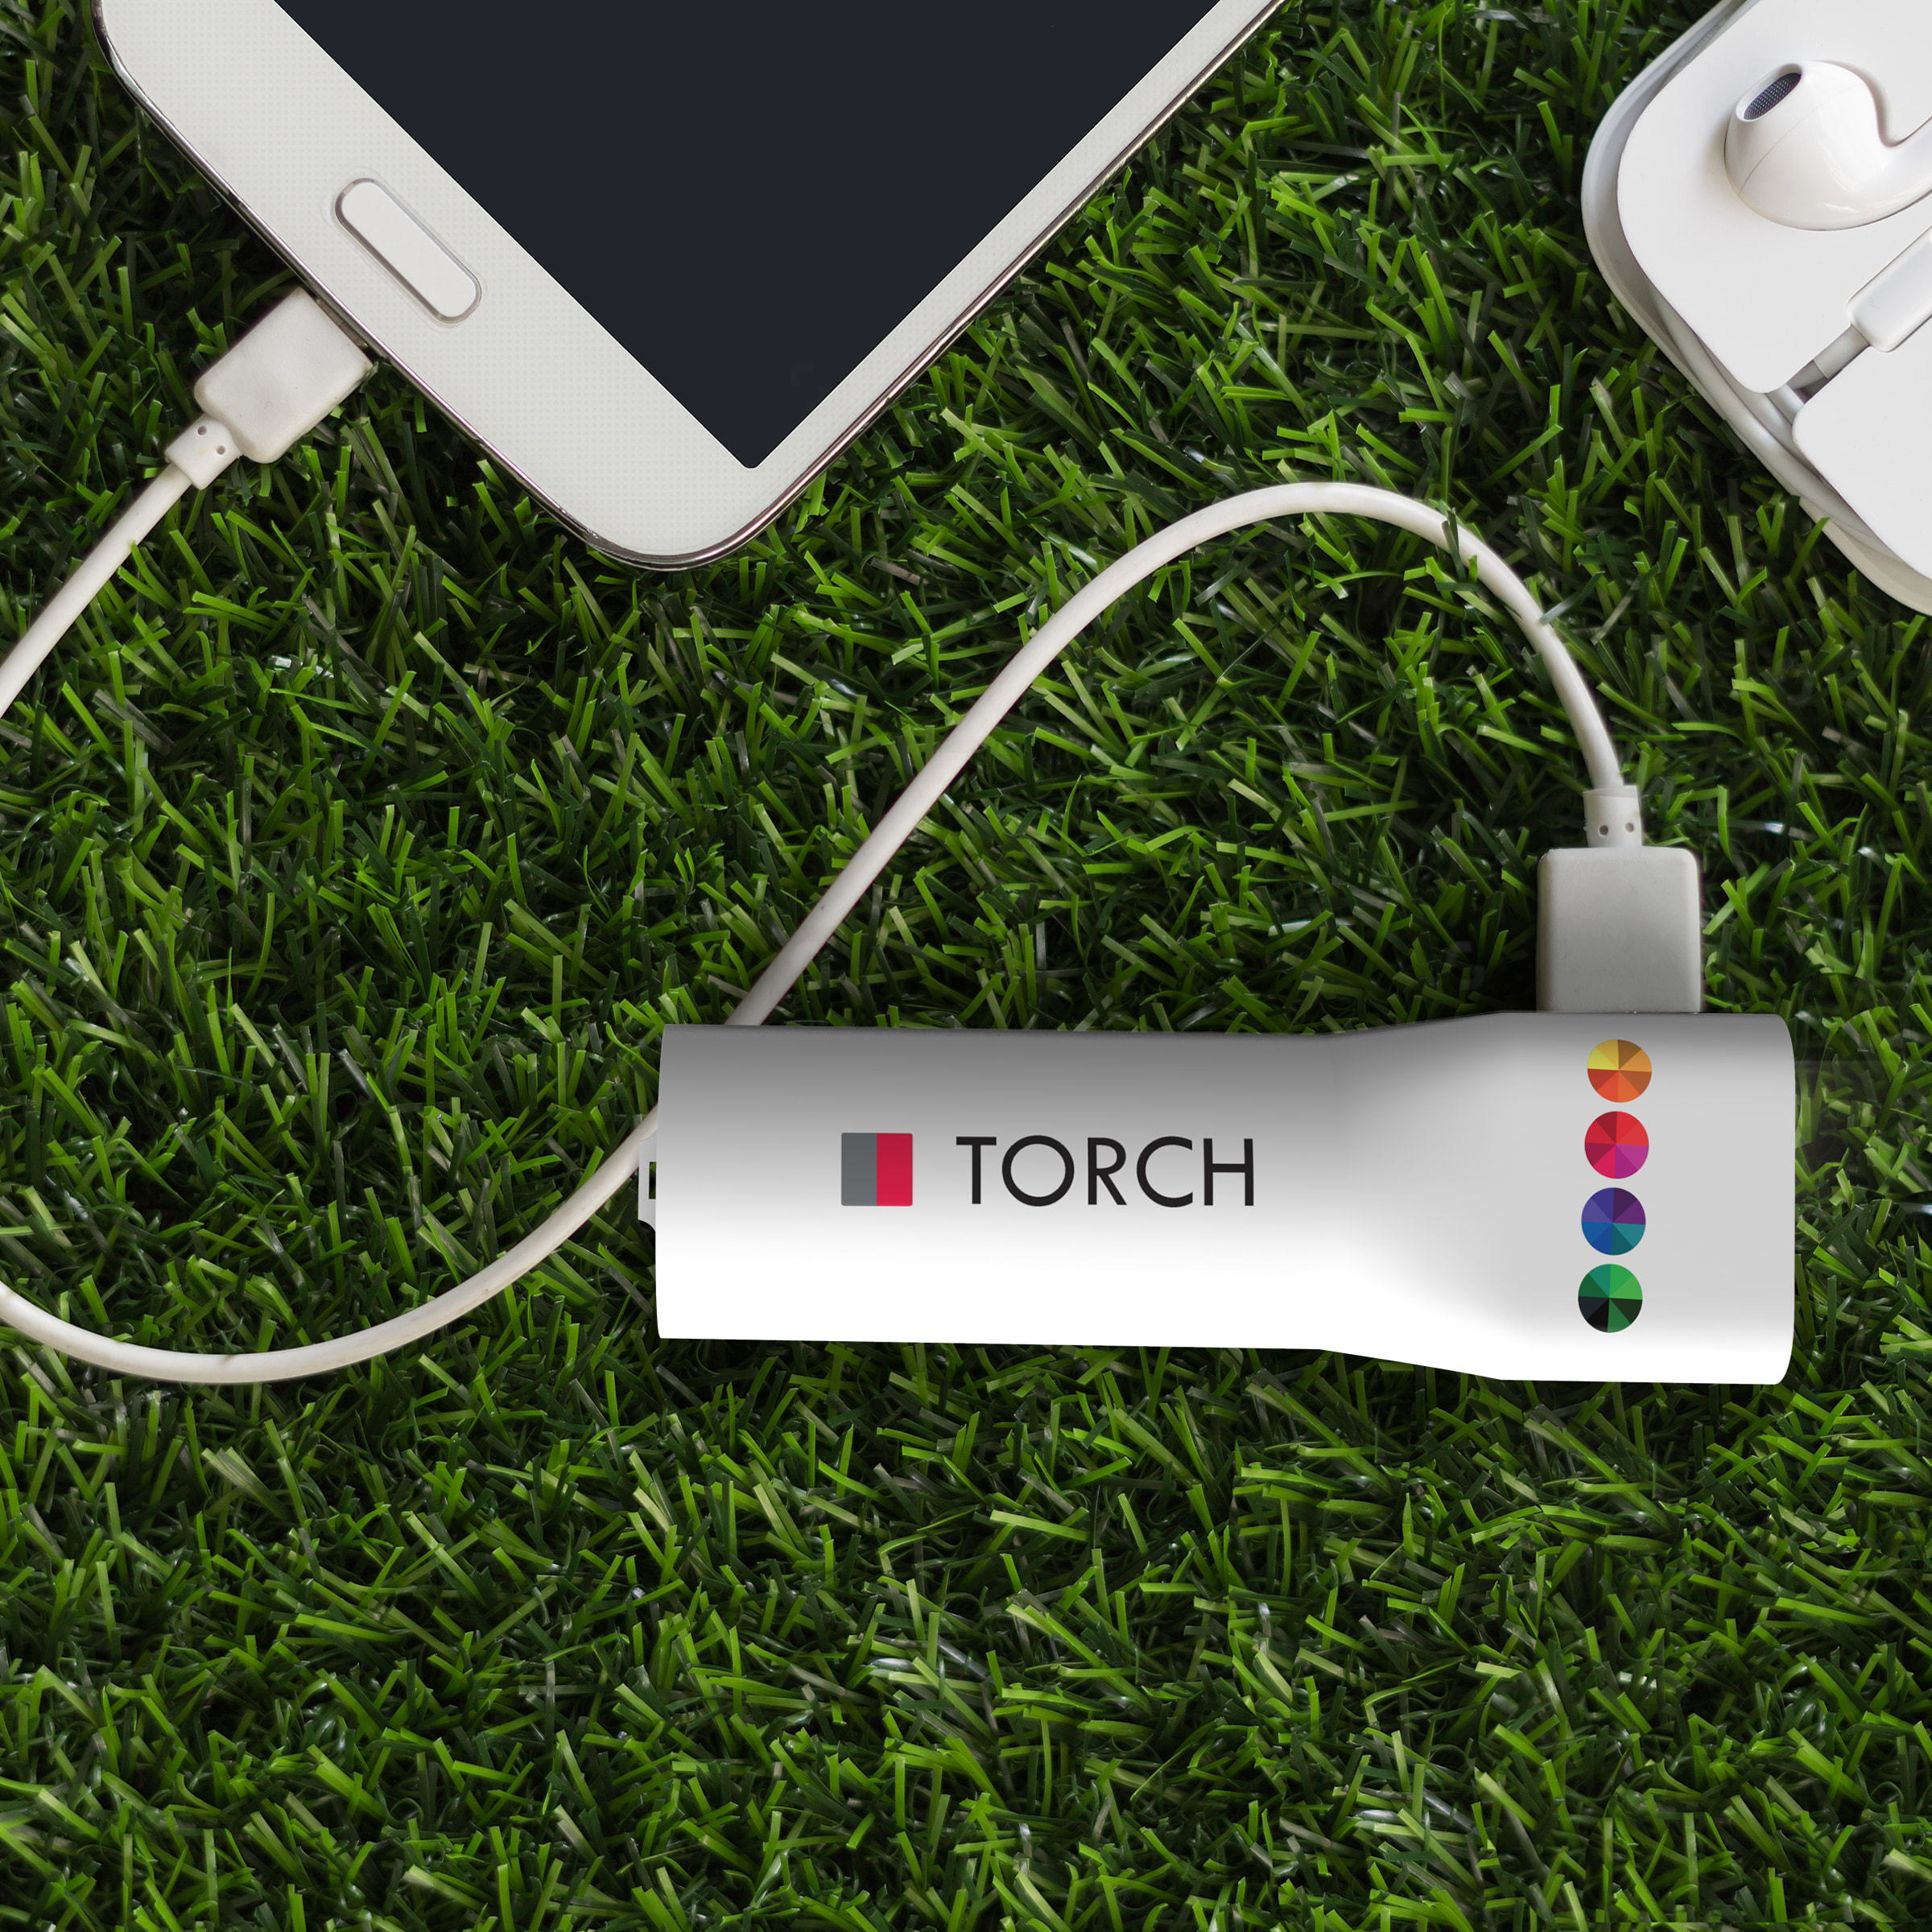 Powerbank Torch 2200 mAh  Wit met bedrukking in full color